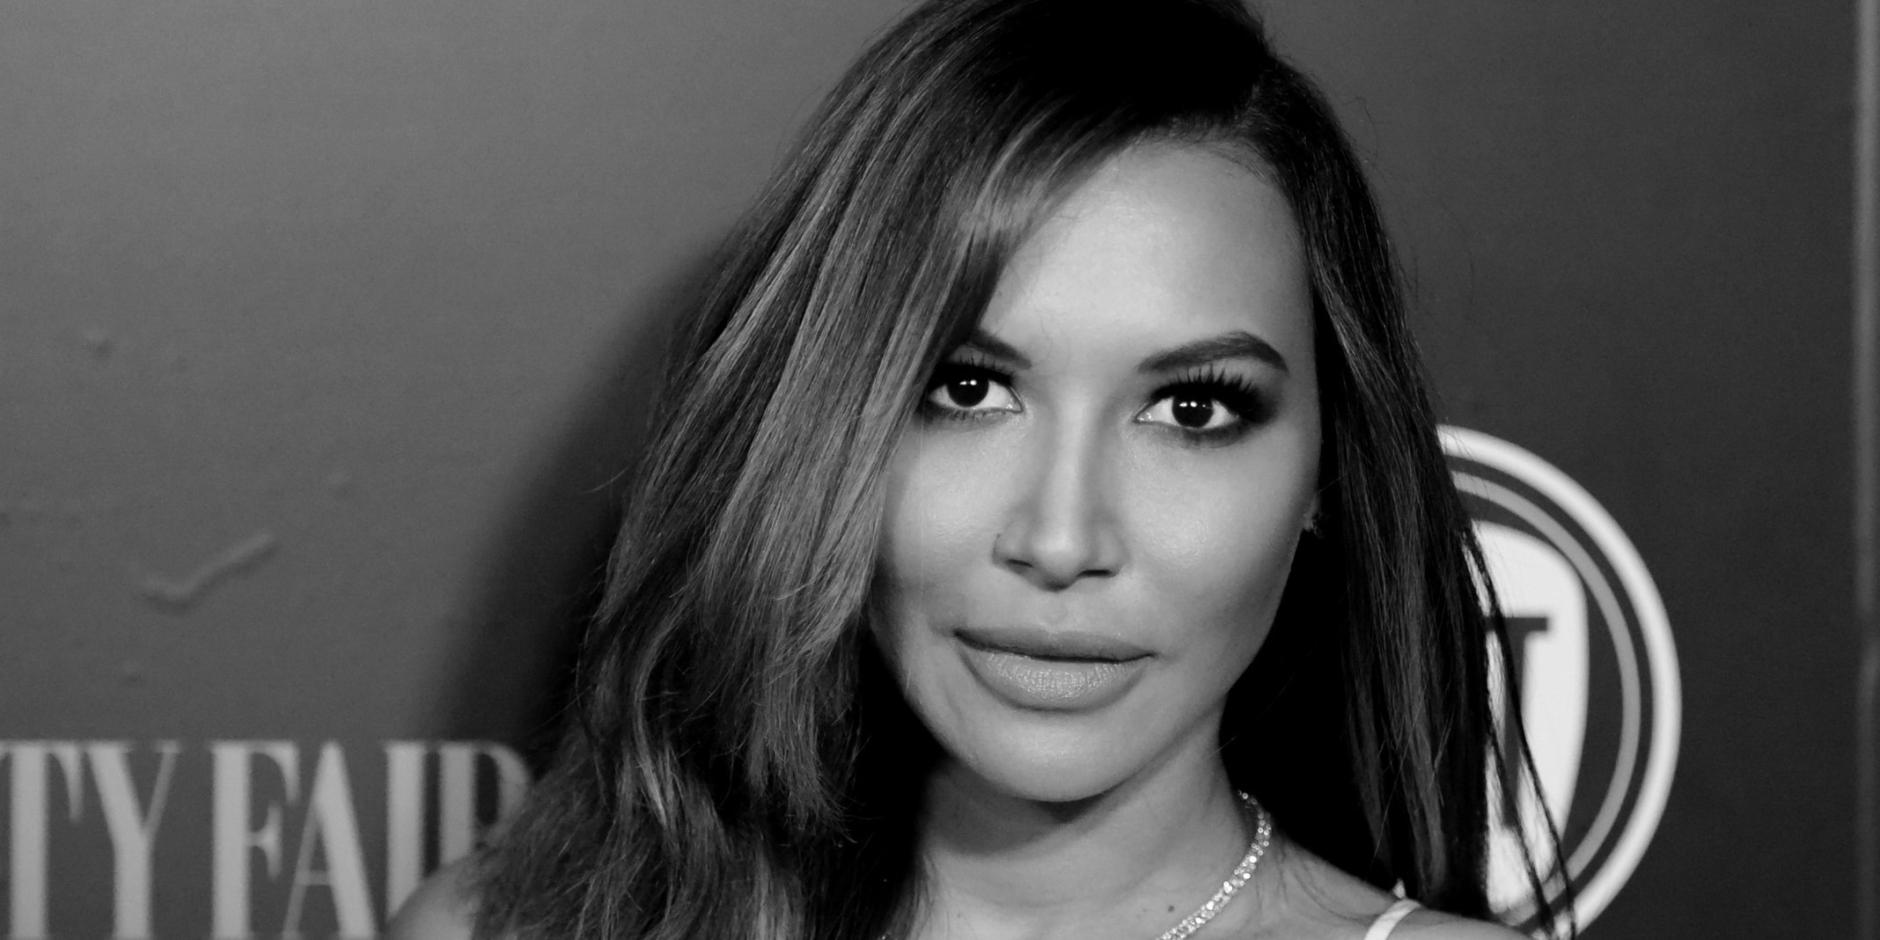 Glee-Star Naya Rivera für BS